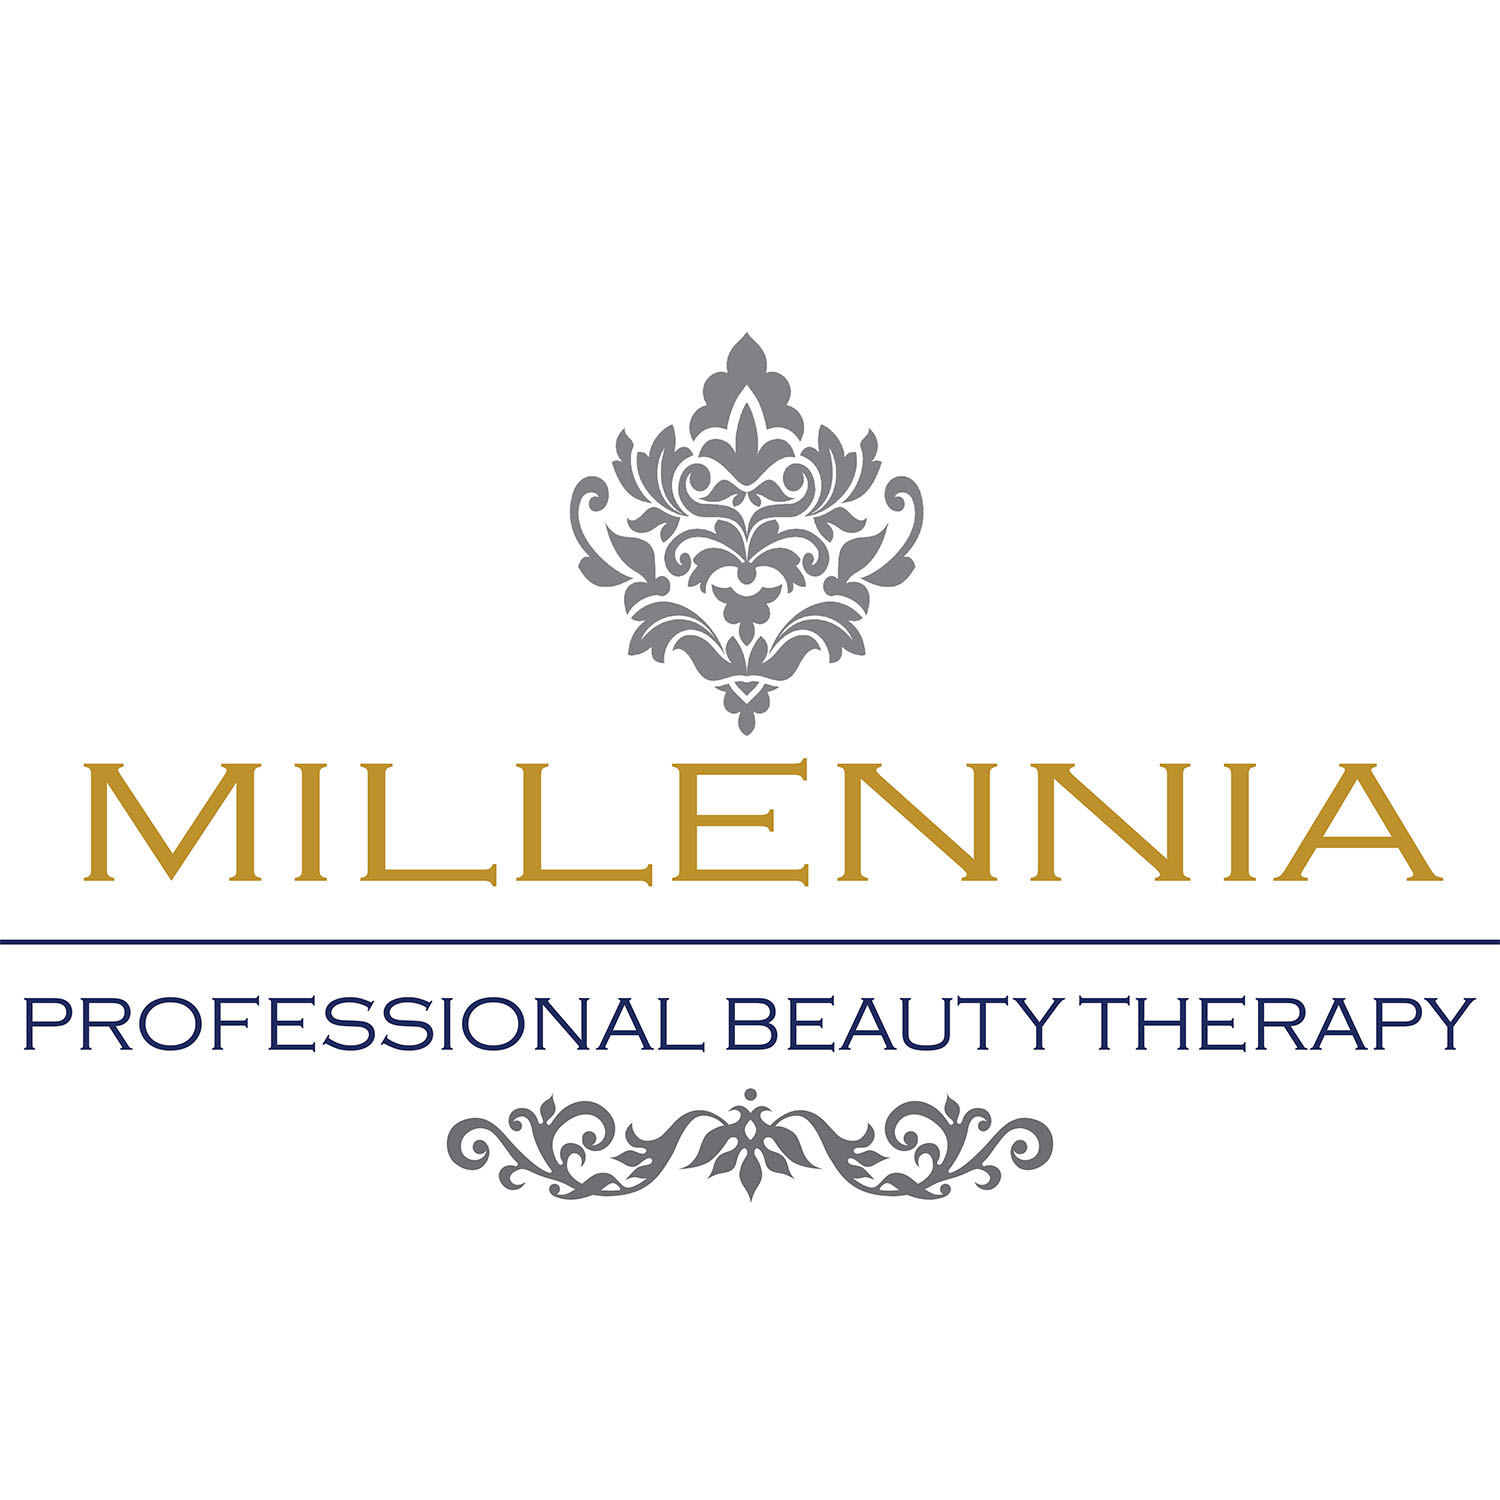 Millennia Professional Beauty Therapy